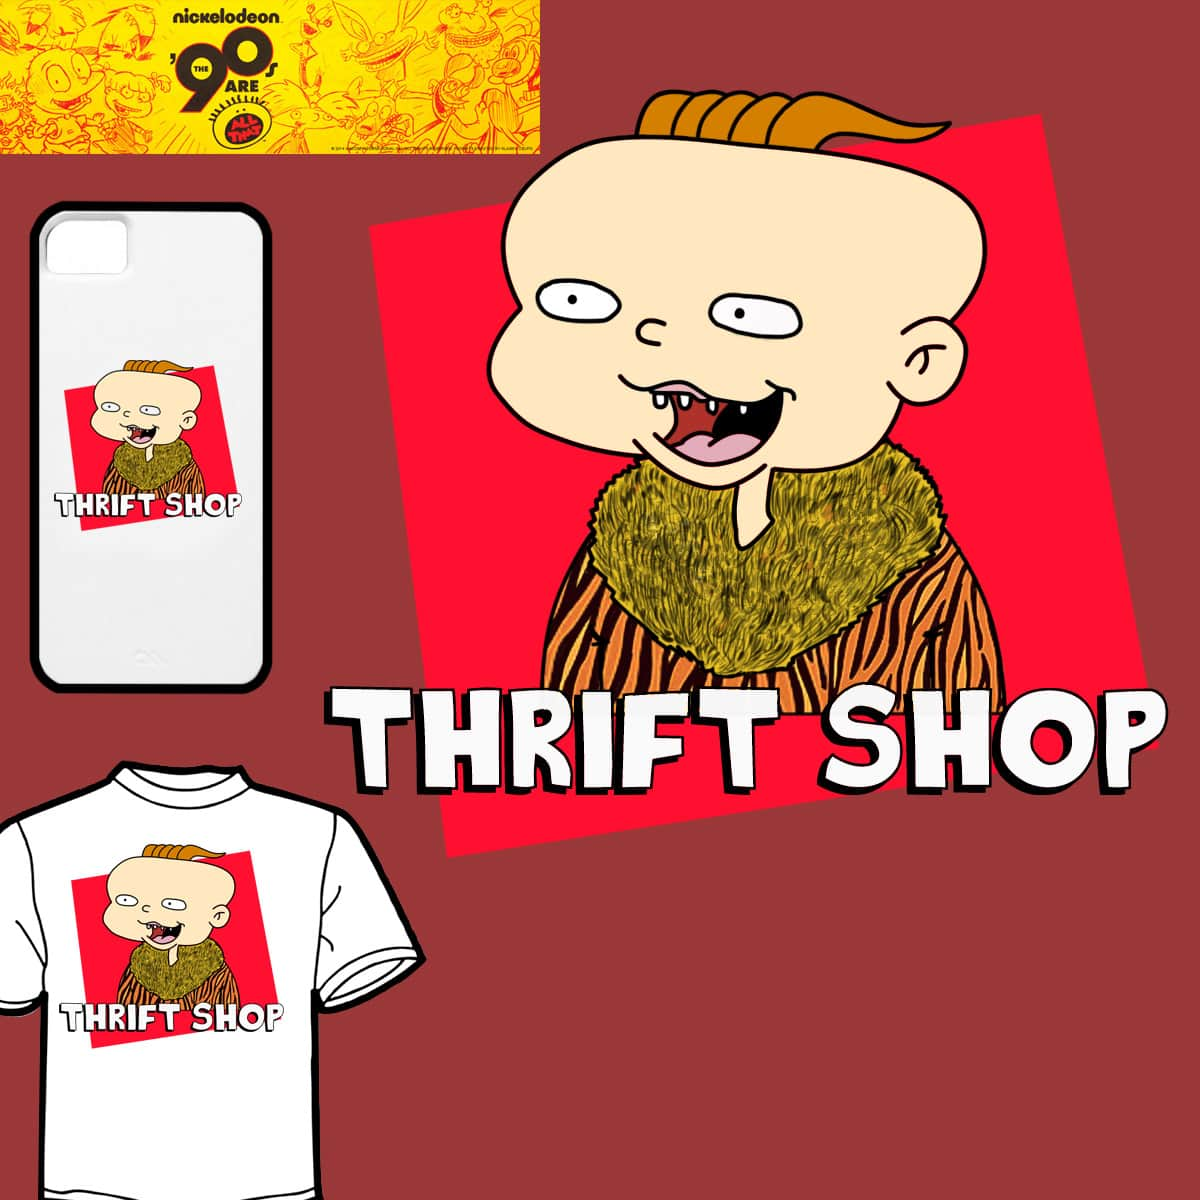 Phil has the style by Tomaha on Threadless